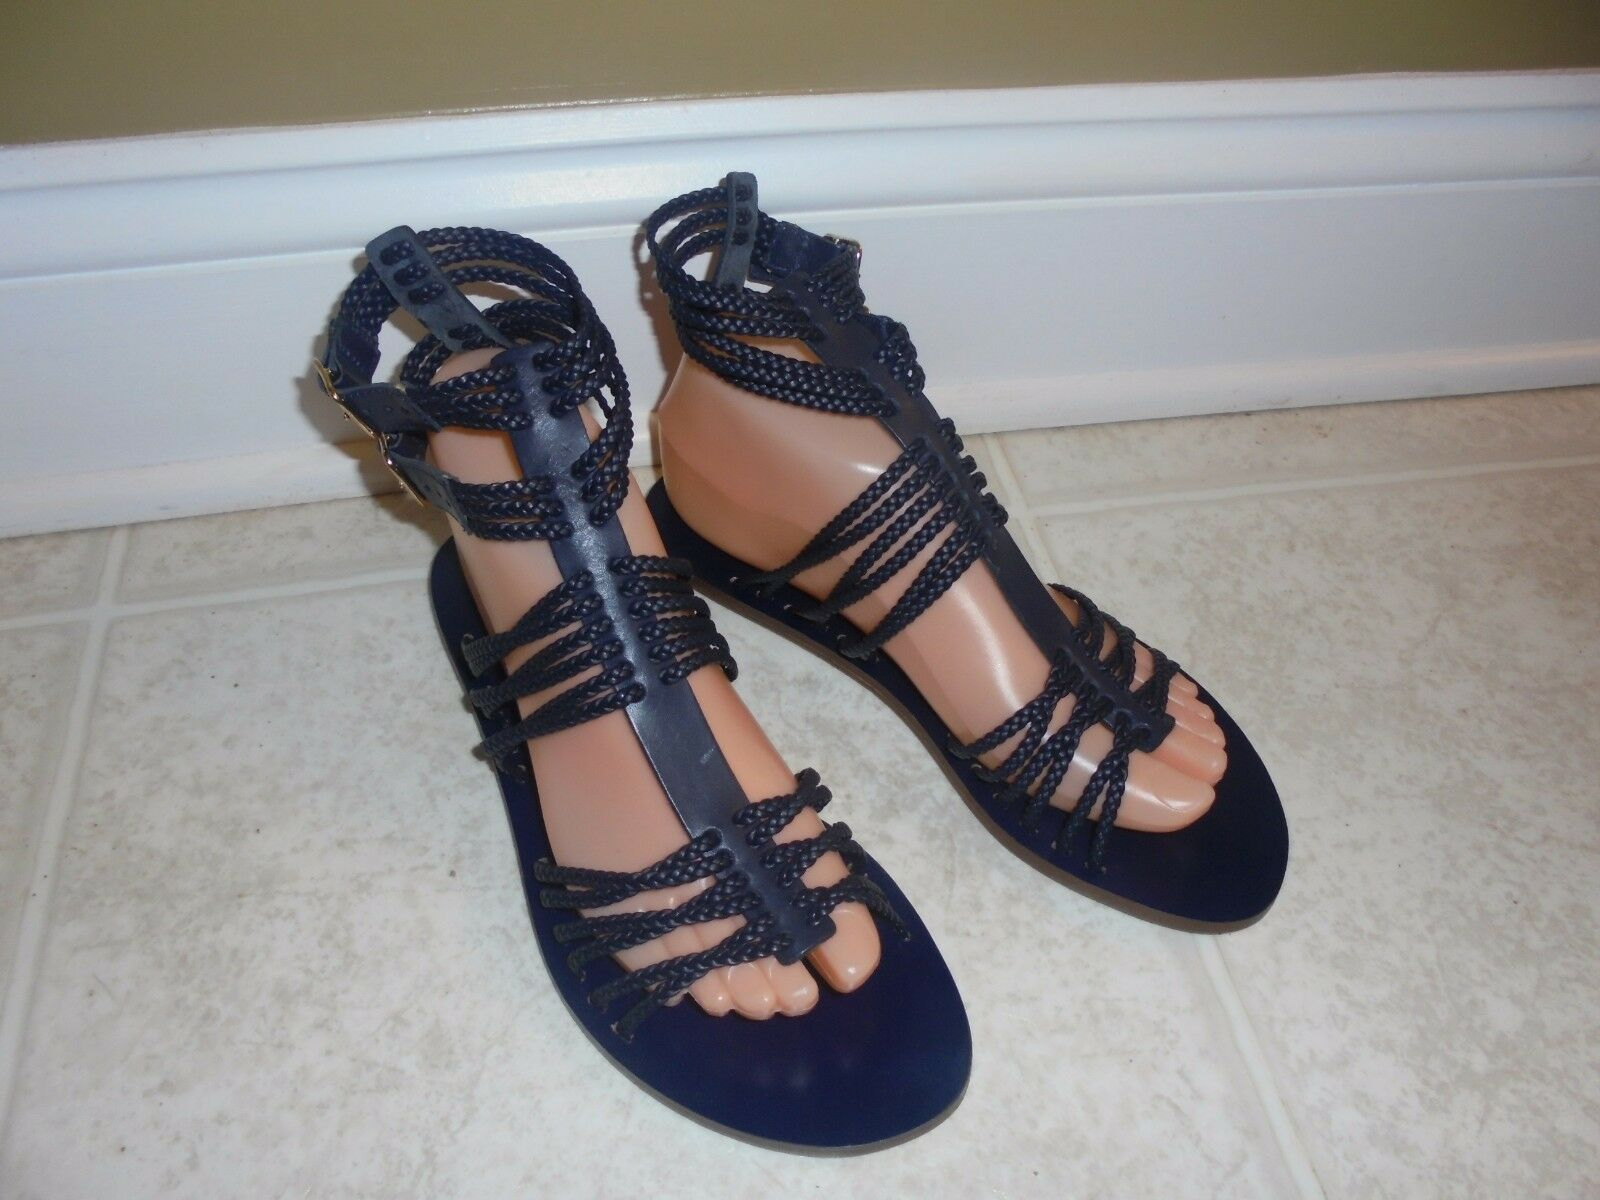 J CREW GLADIATOR BREADING SANDALS IN noir Taille-7 1 2 AND Taille-6